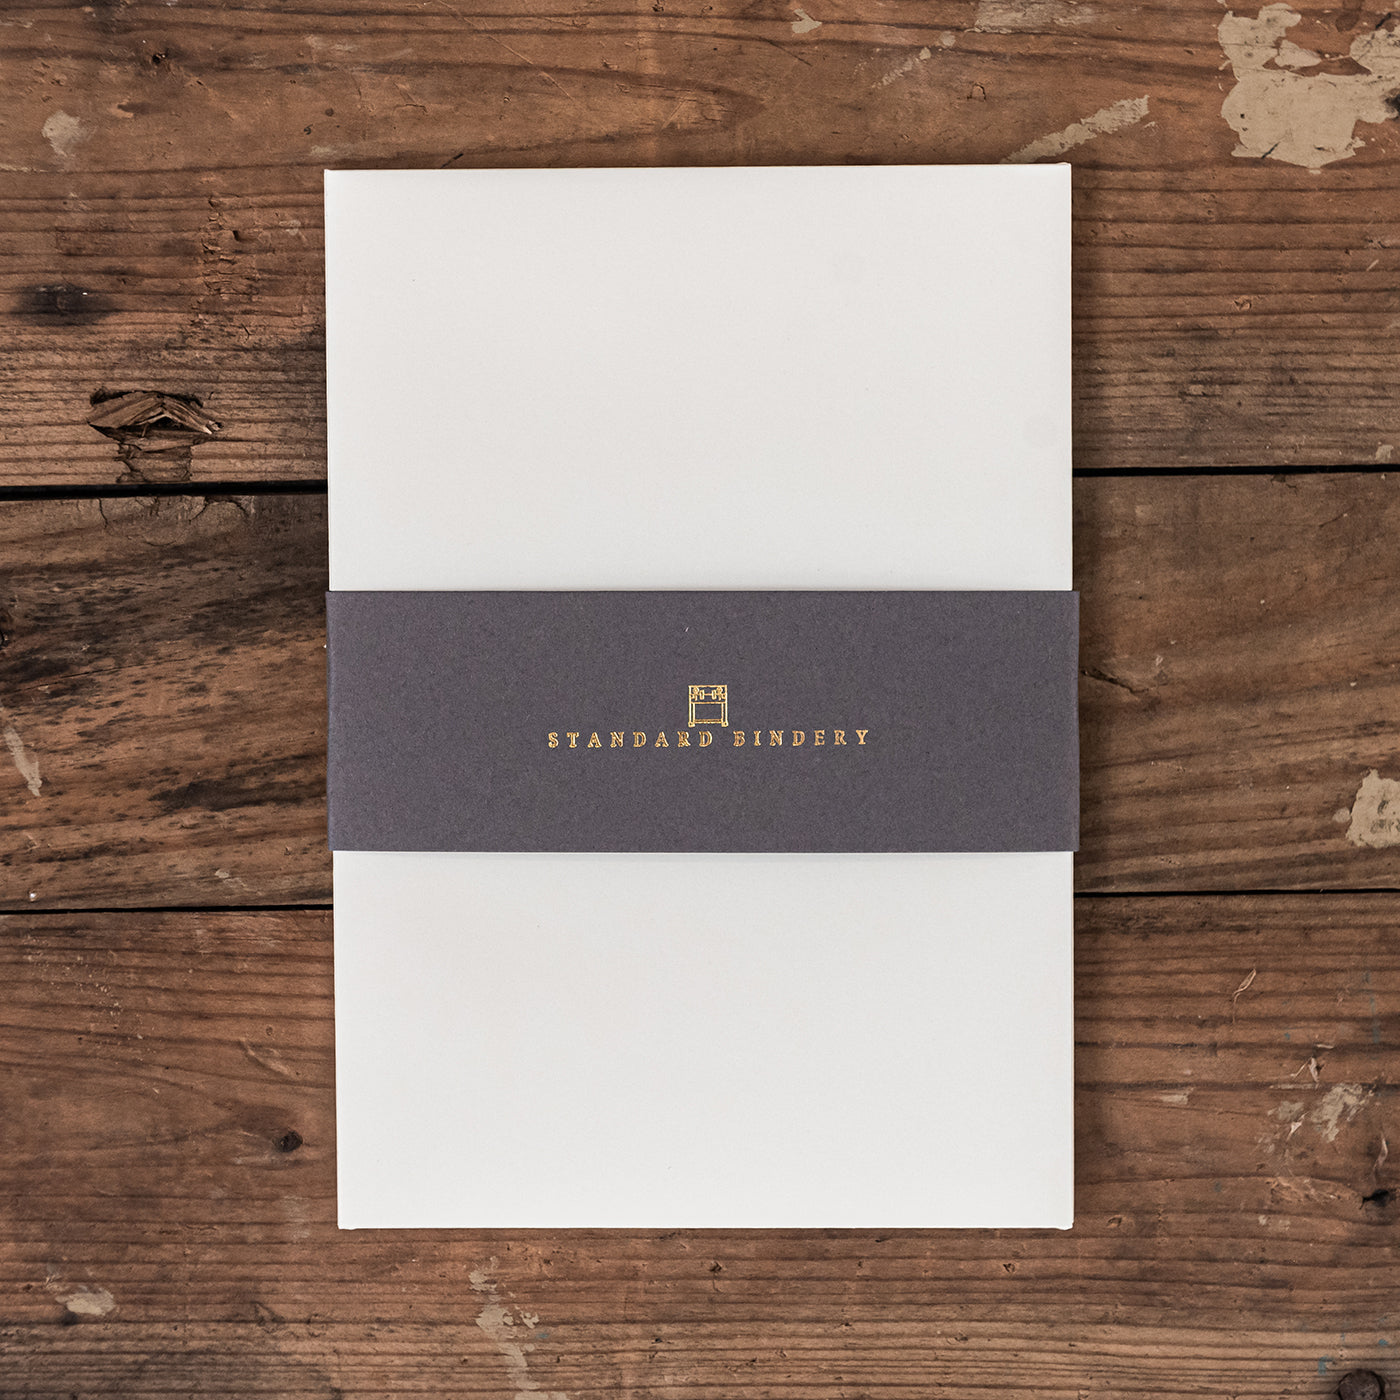 C6 Envelopes - Pack of 5 - Macadamia - Standard Bindery